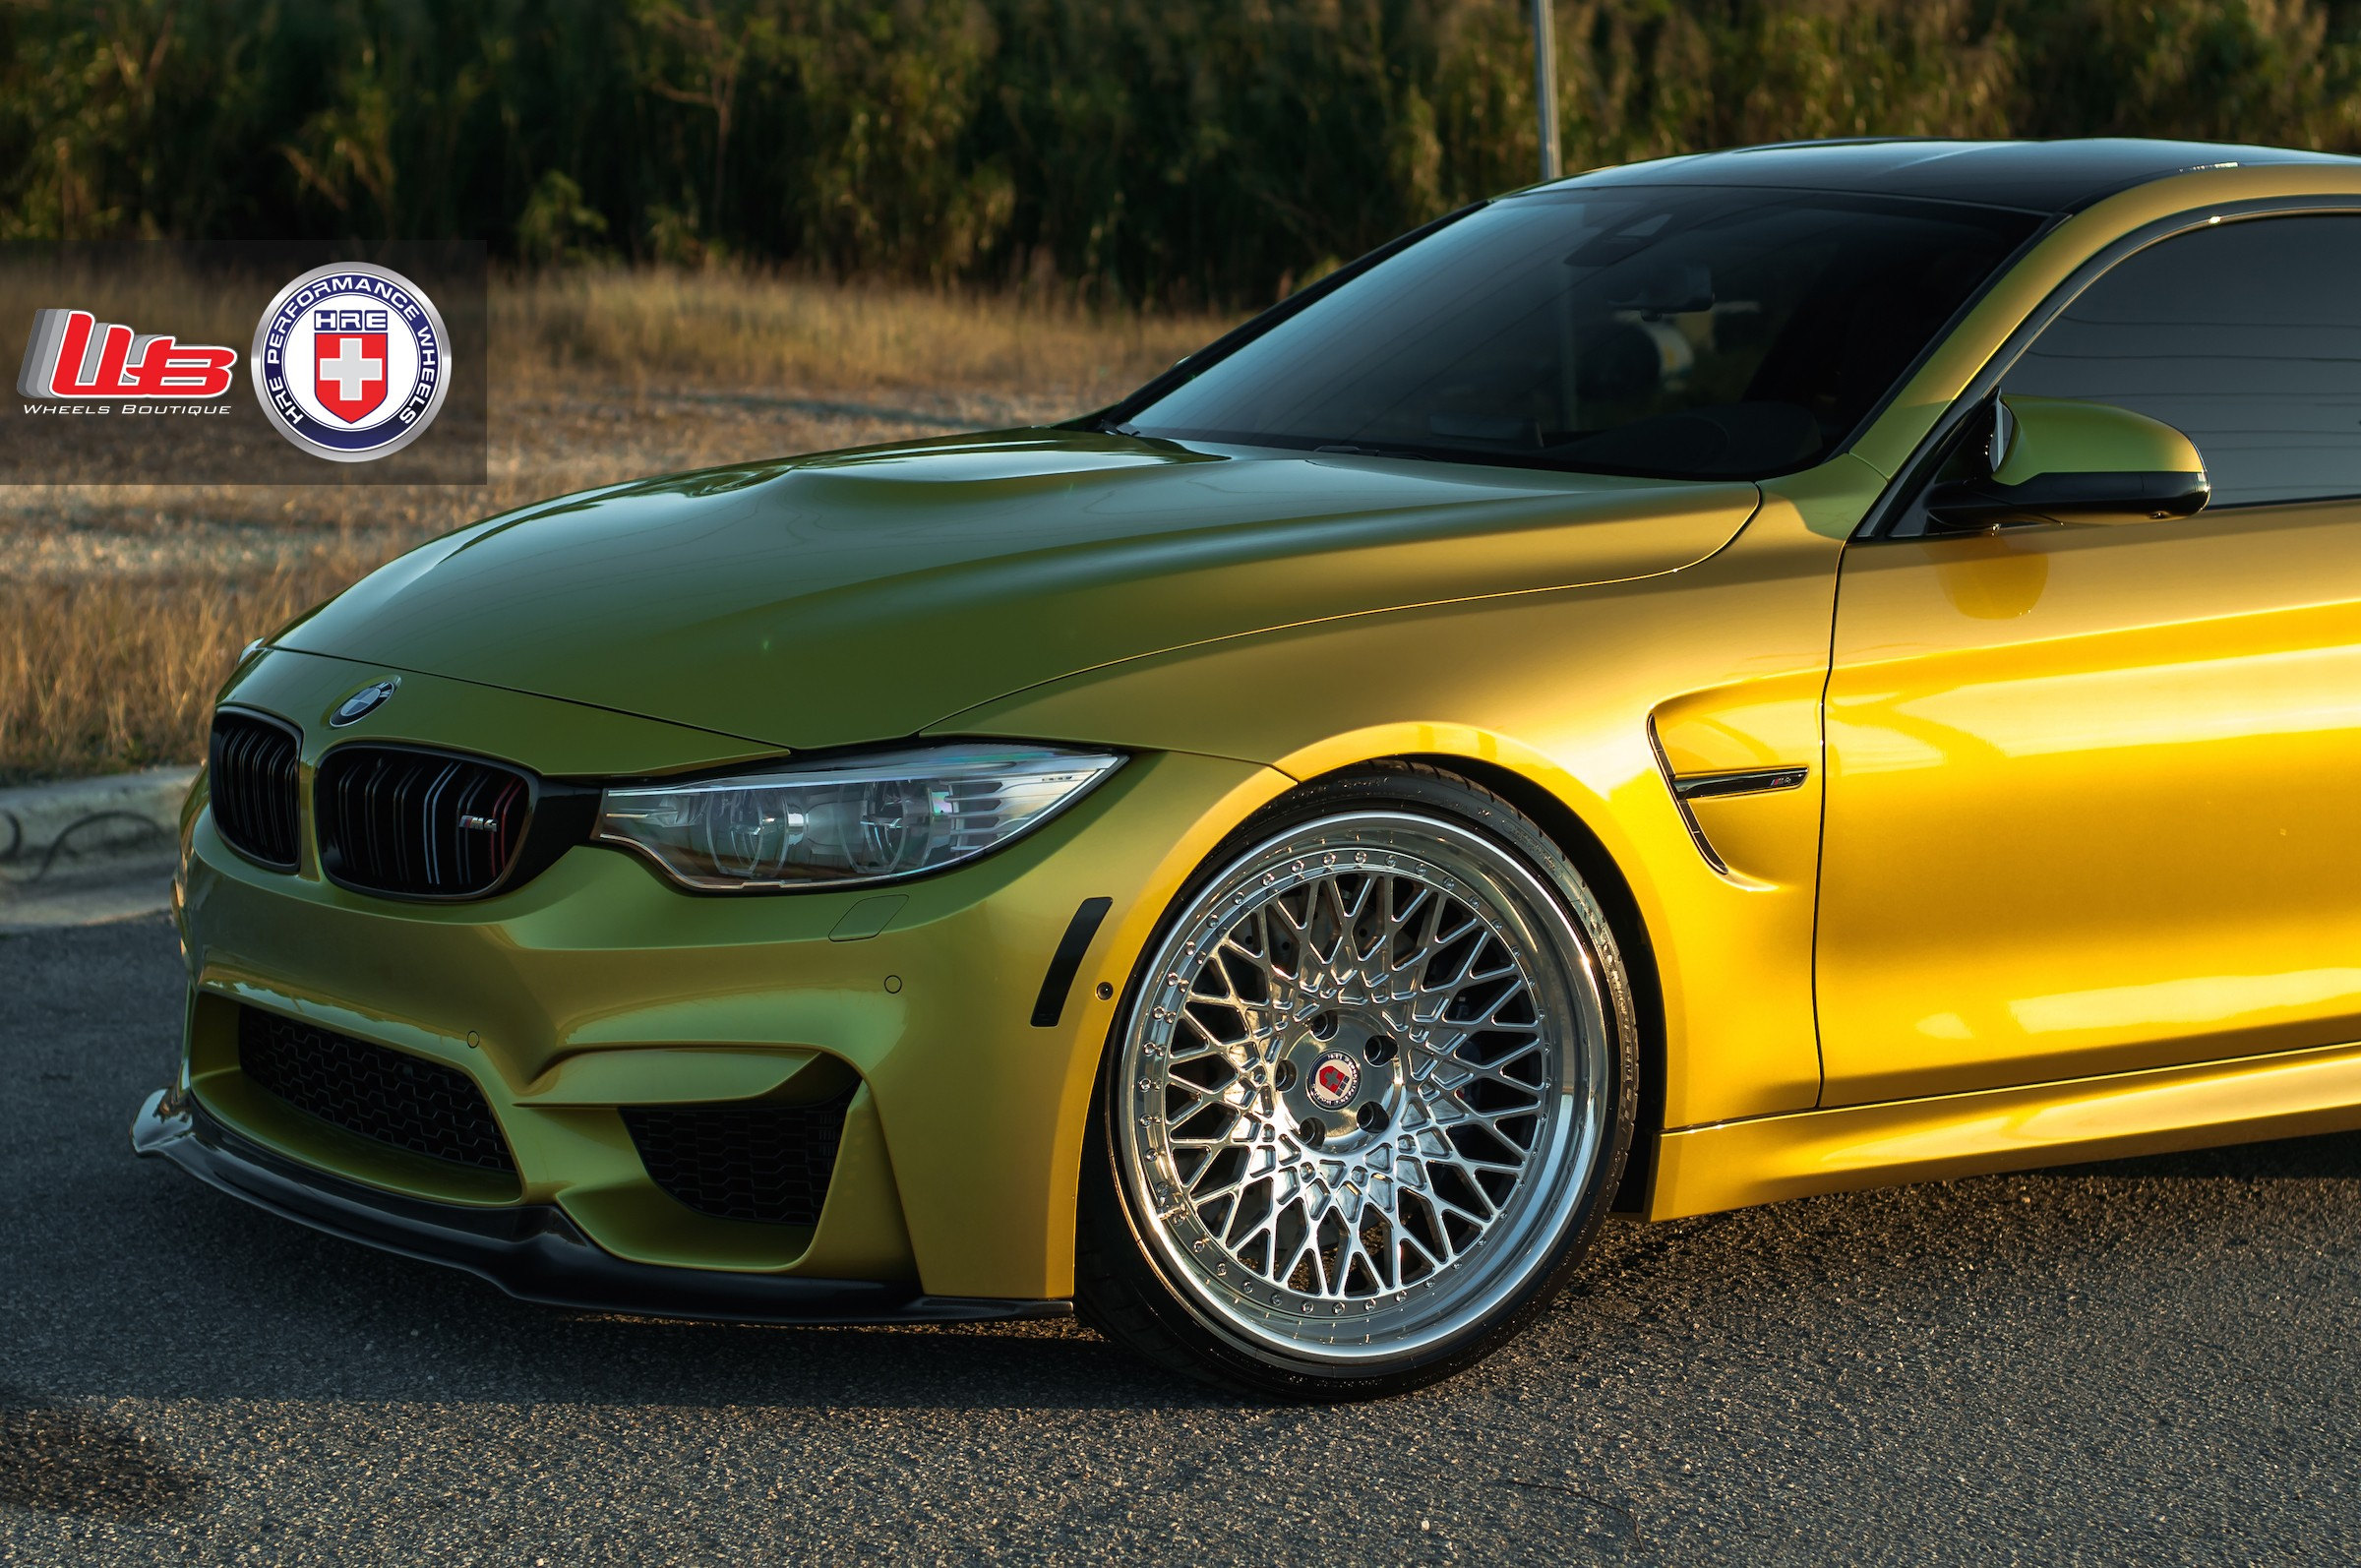 Classic Mustang Car Wallpaper Can The Bmw M4 Pull Off A Classic Set Of Wheels